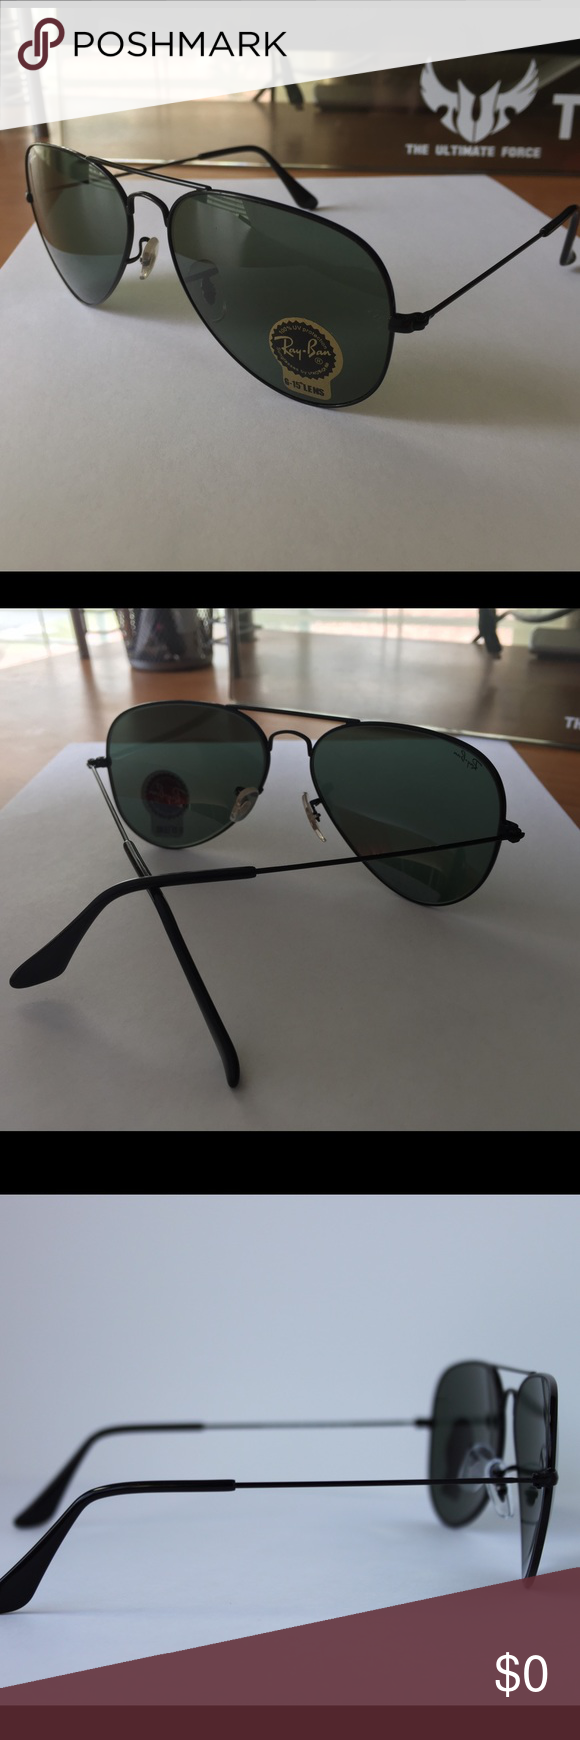 Additional pictures RB3035 L2823 Additional pictures for Ray-Ban classic aviator sunglasses in black Ray-Ban Accessories Glasses